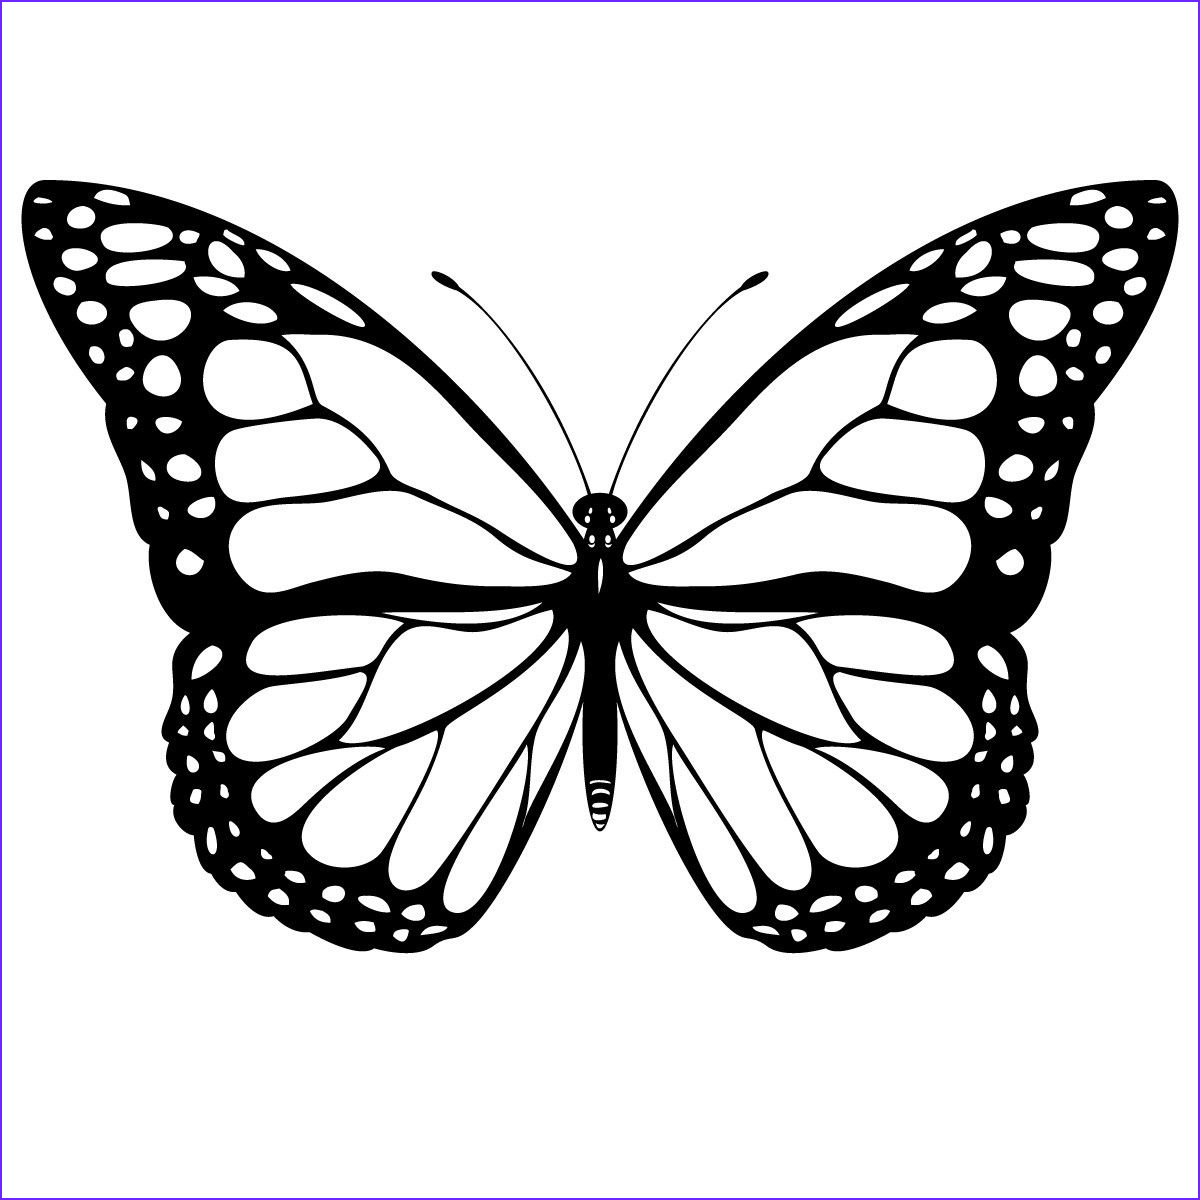 Coloring Pages Of butterflies Beautiful Image Free Printable butterfly Coloring Pages for Kids